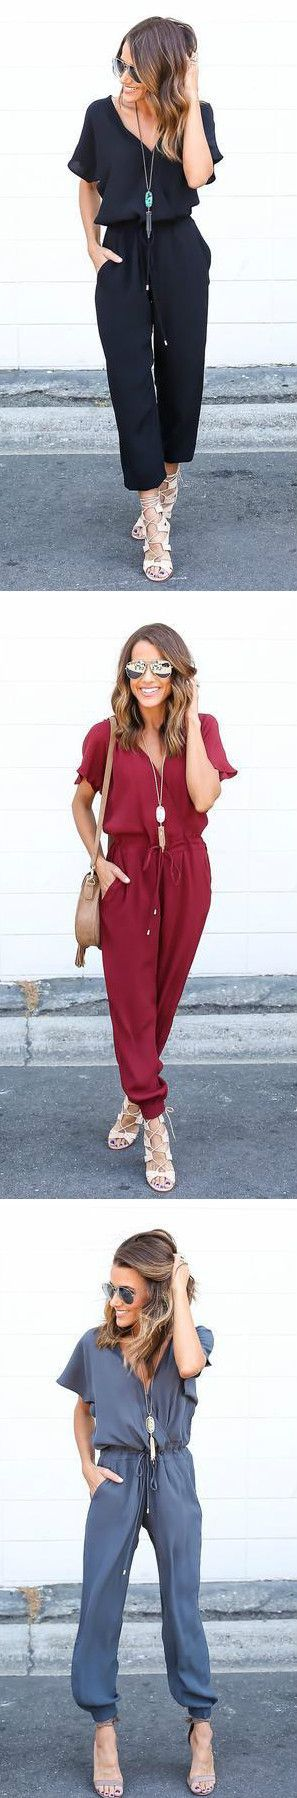 This is cute, but I have had the hardest time finding jumpers and rompers that f... 1